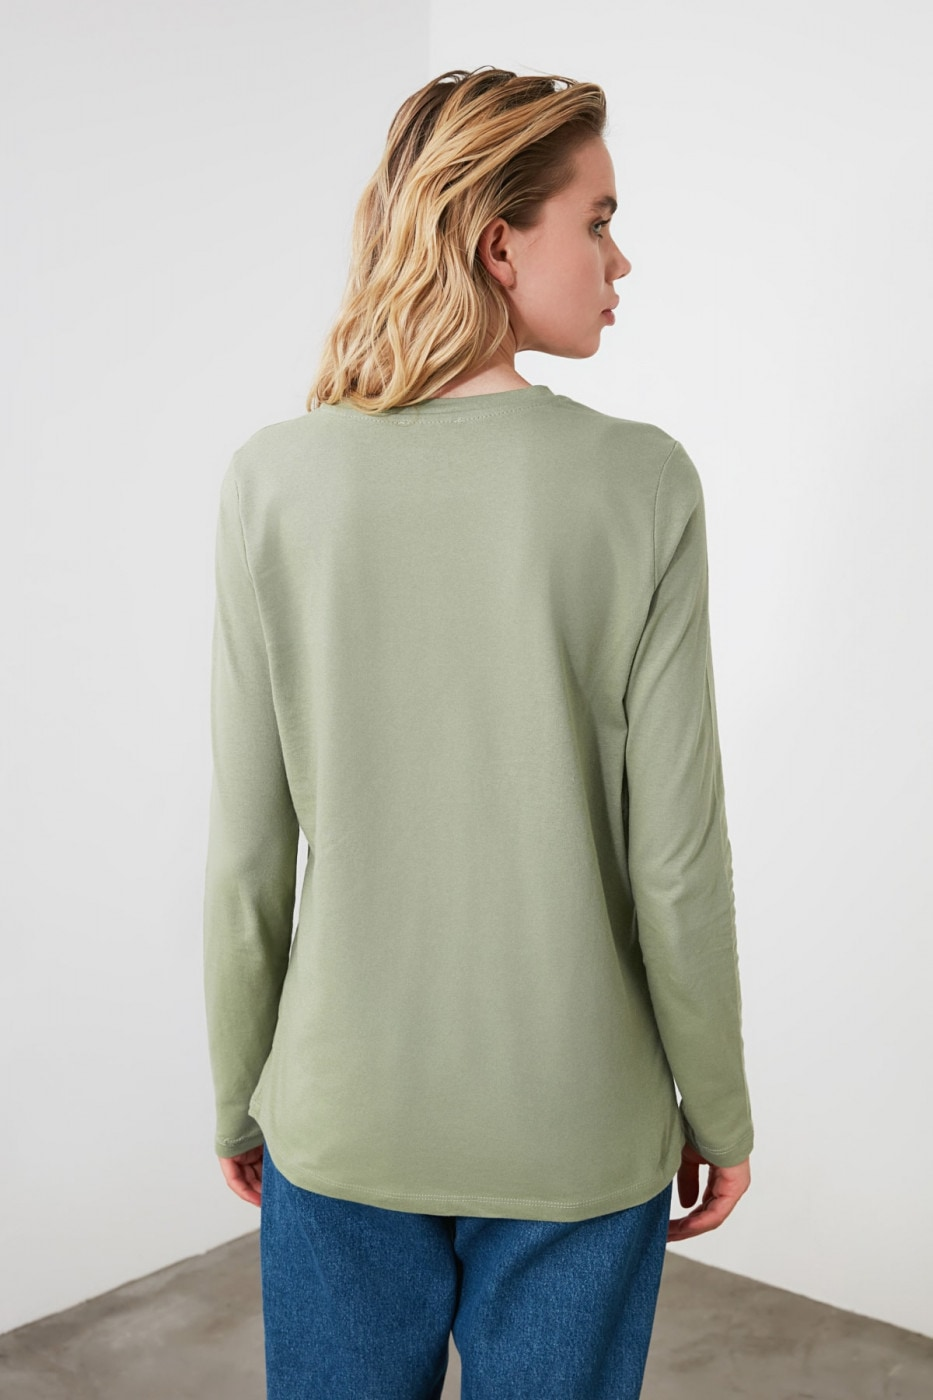 Trendyol Mint Printed Basic Long Sleeve Knitting T-shirt